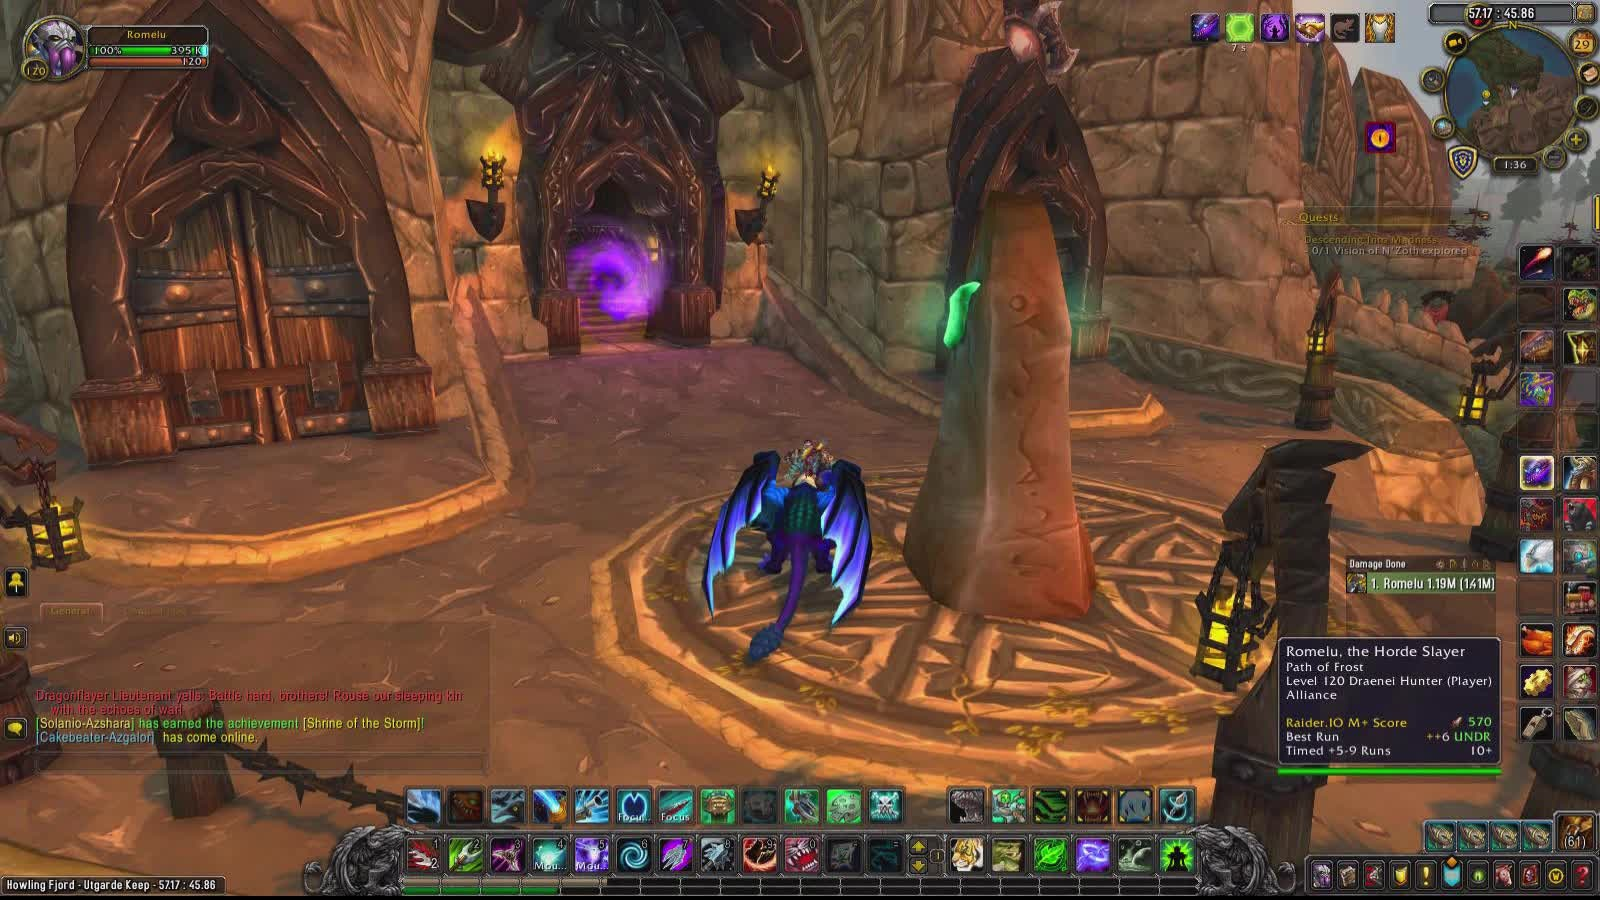 World of Warcraft: General - How to Farm Rare Mounts in World of Warcraft video cover image 1